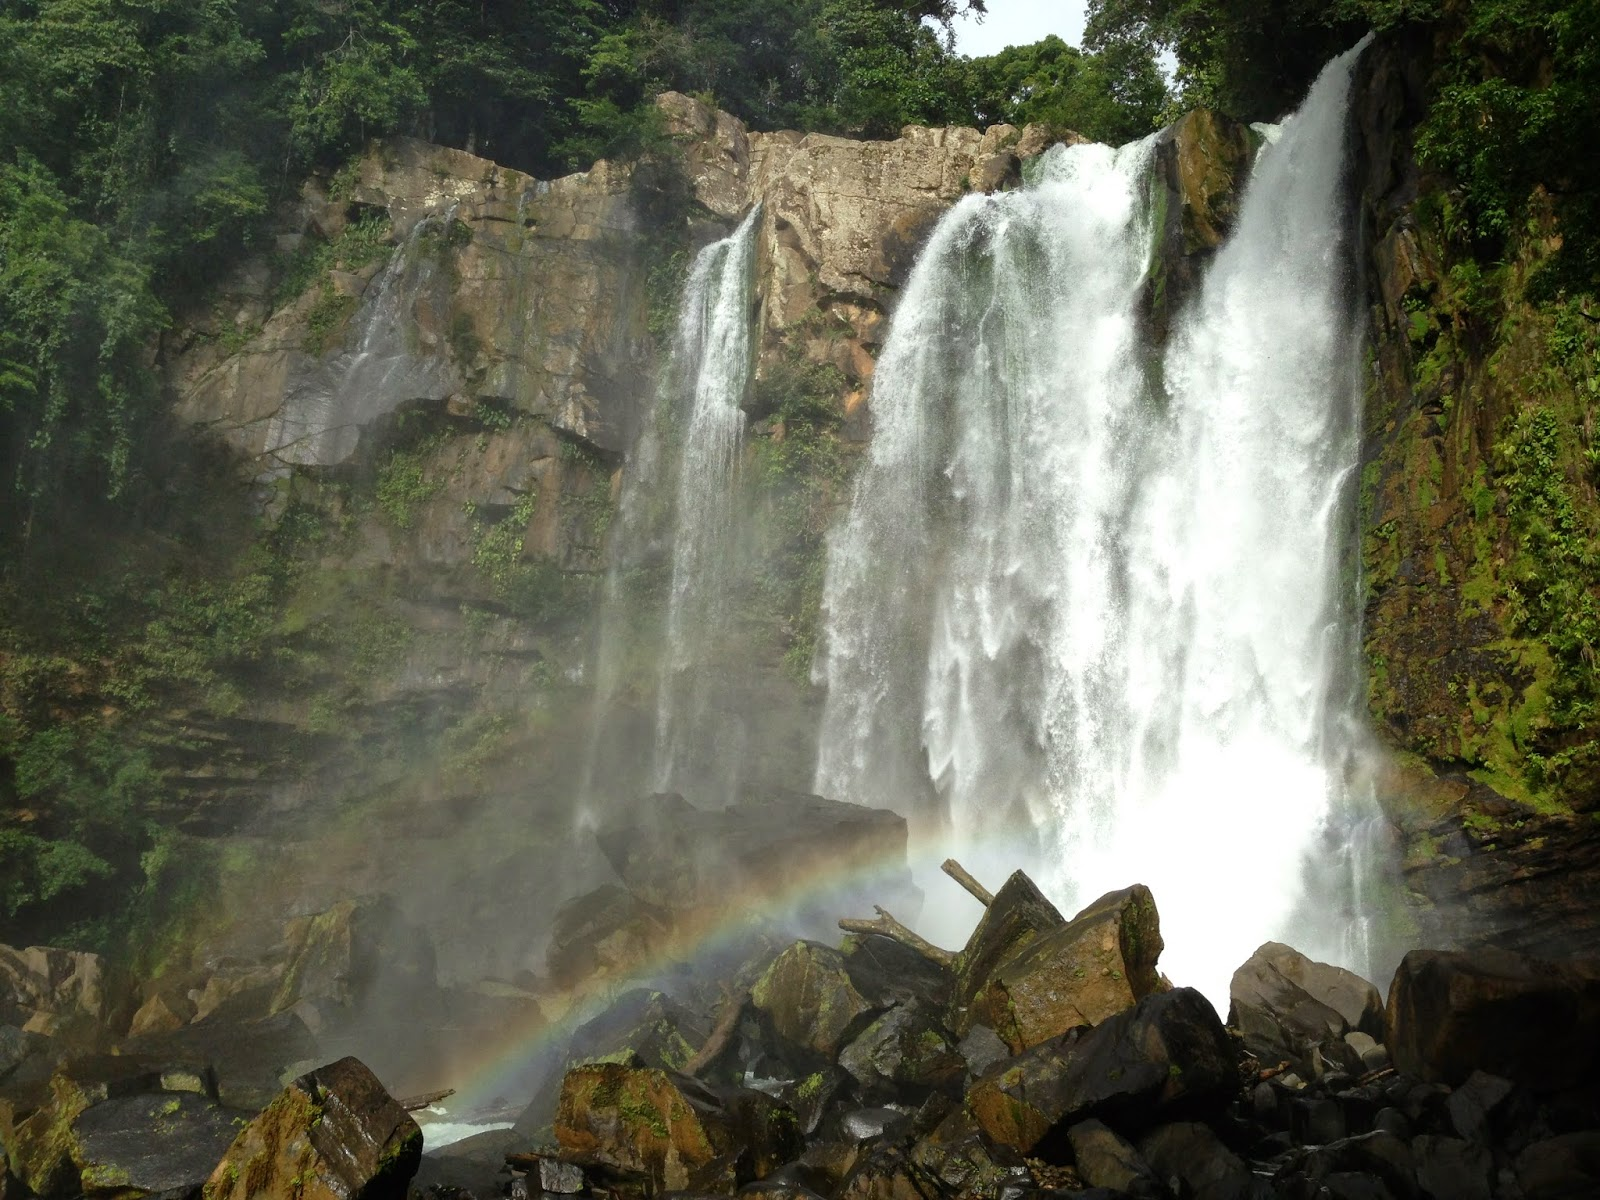 Chasing Waterfalls in Costa Rica - The Haute Voyage